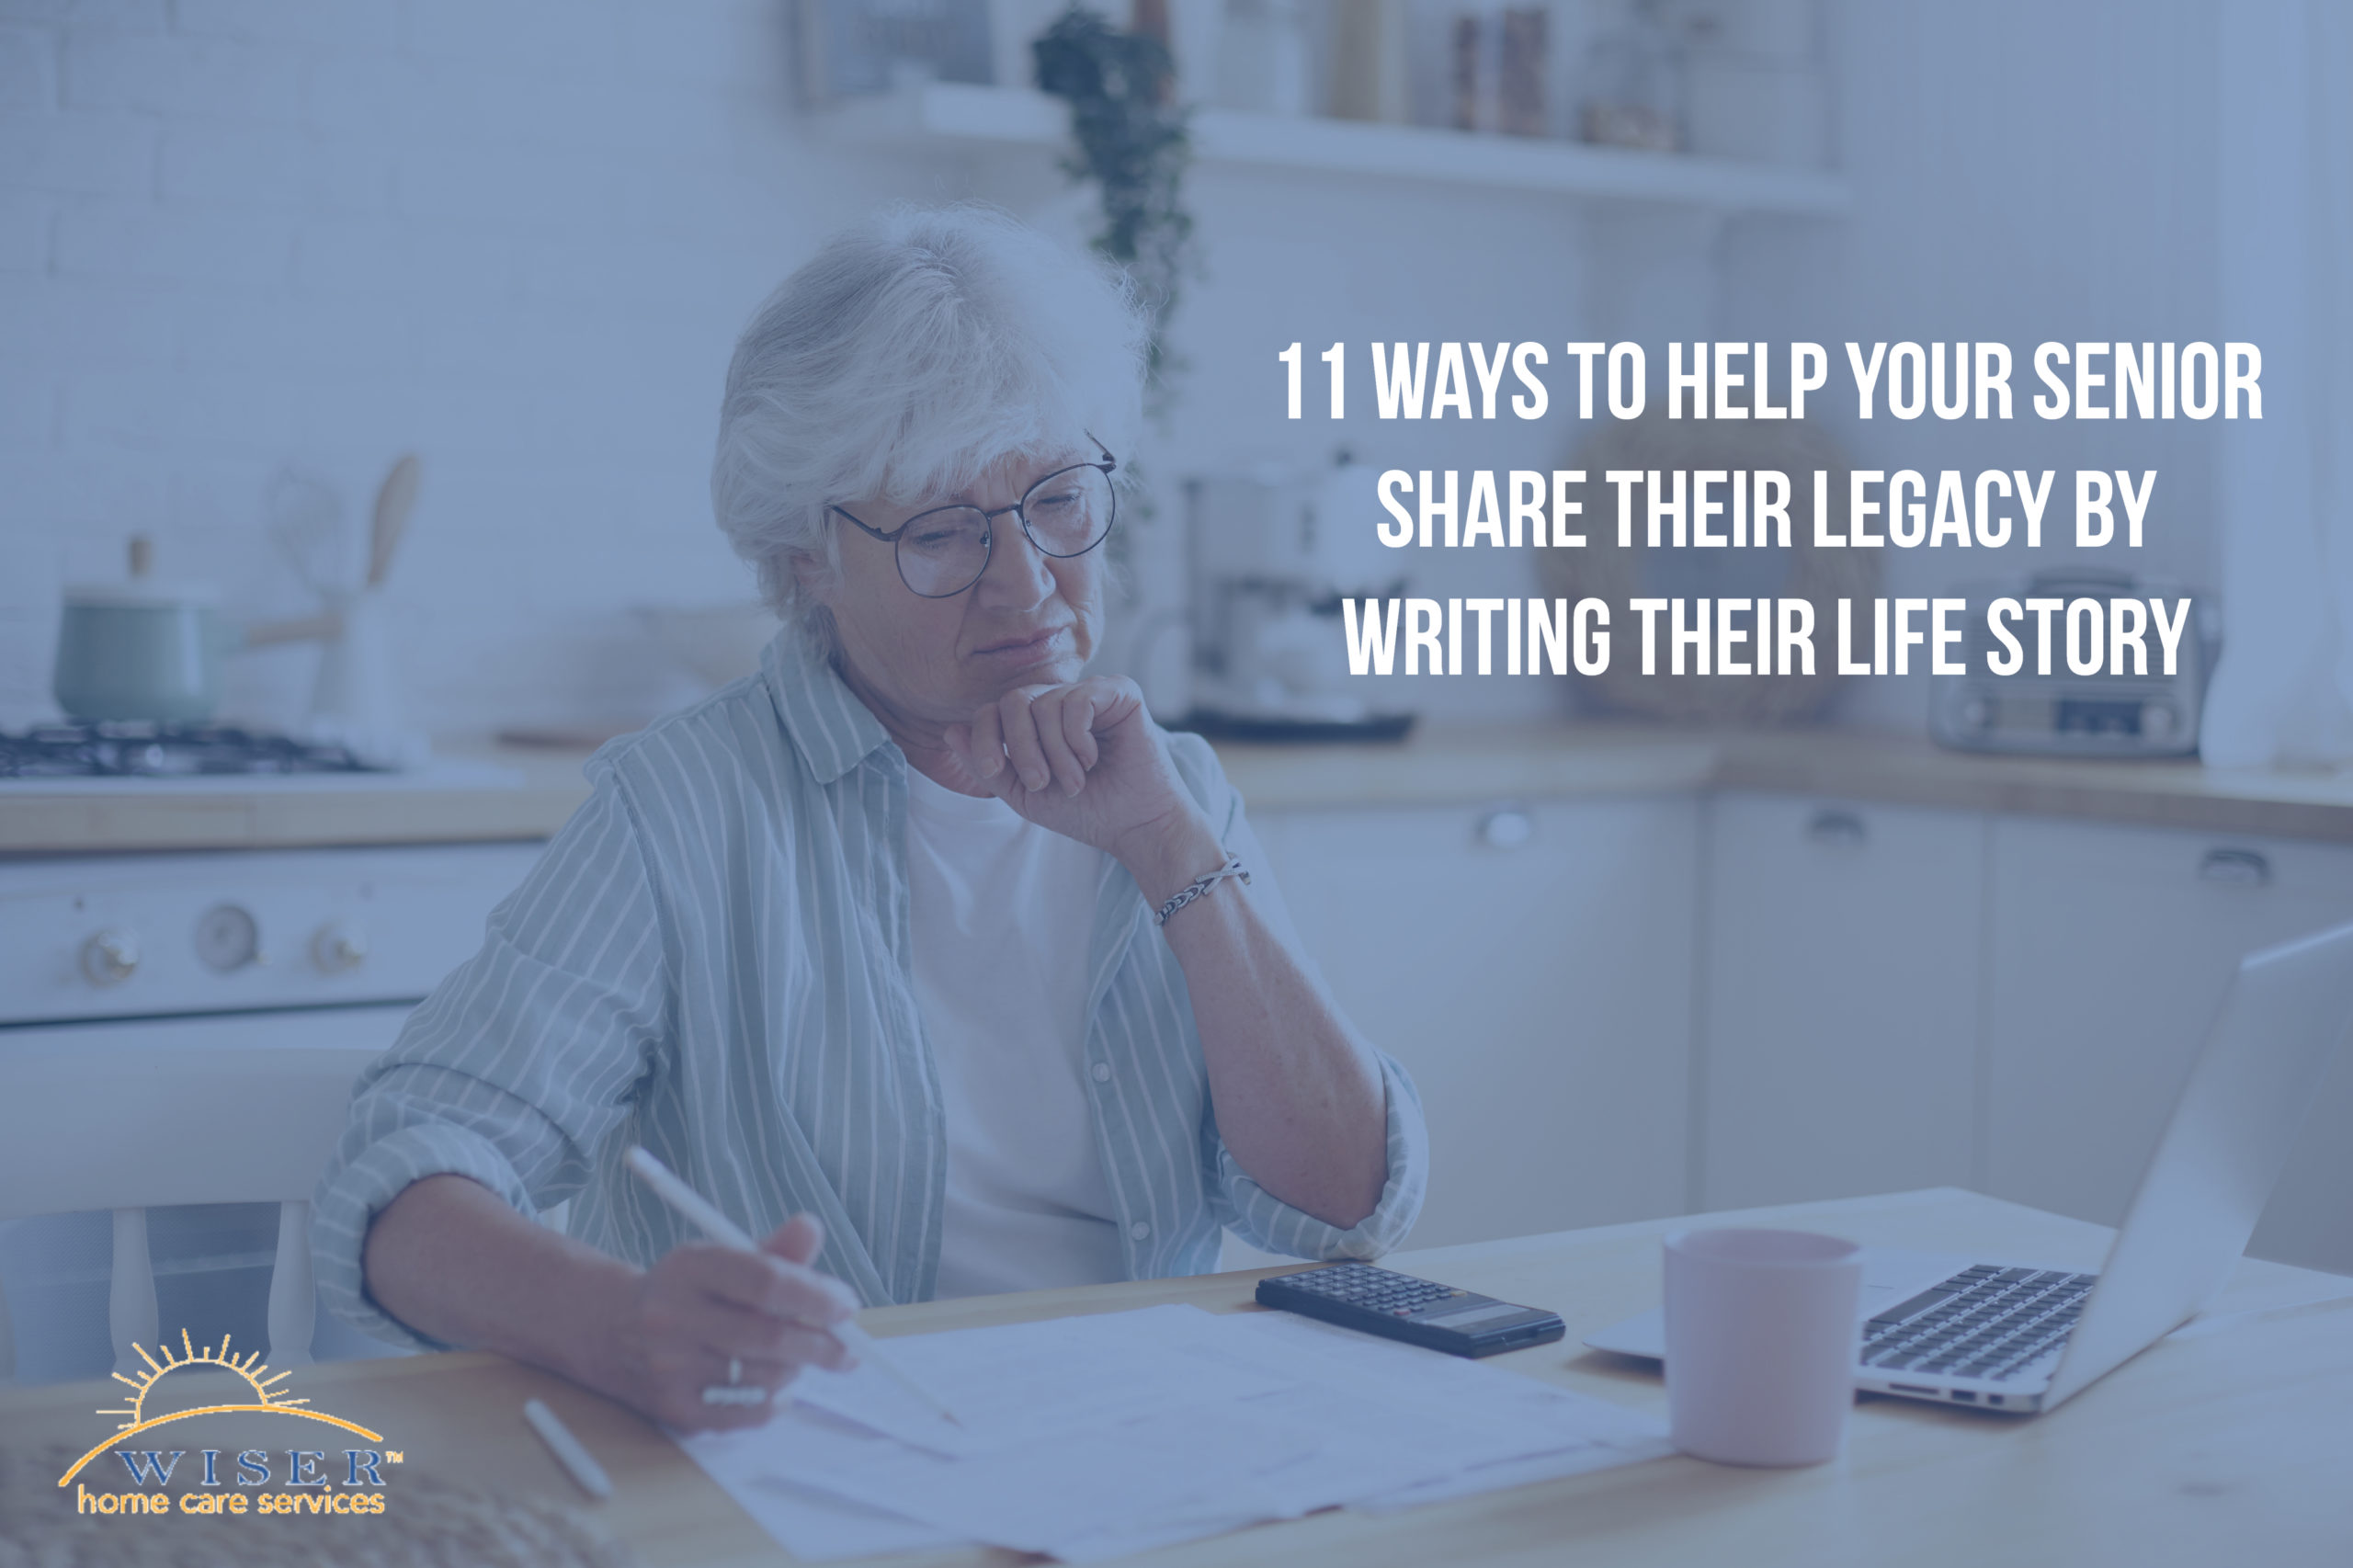 11 Ways to Help Your Senior Share Their Legacy by Writing Their Life Story